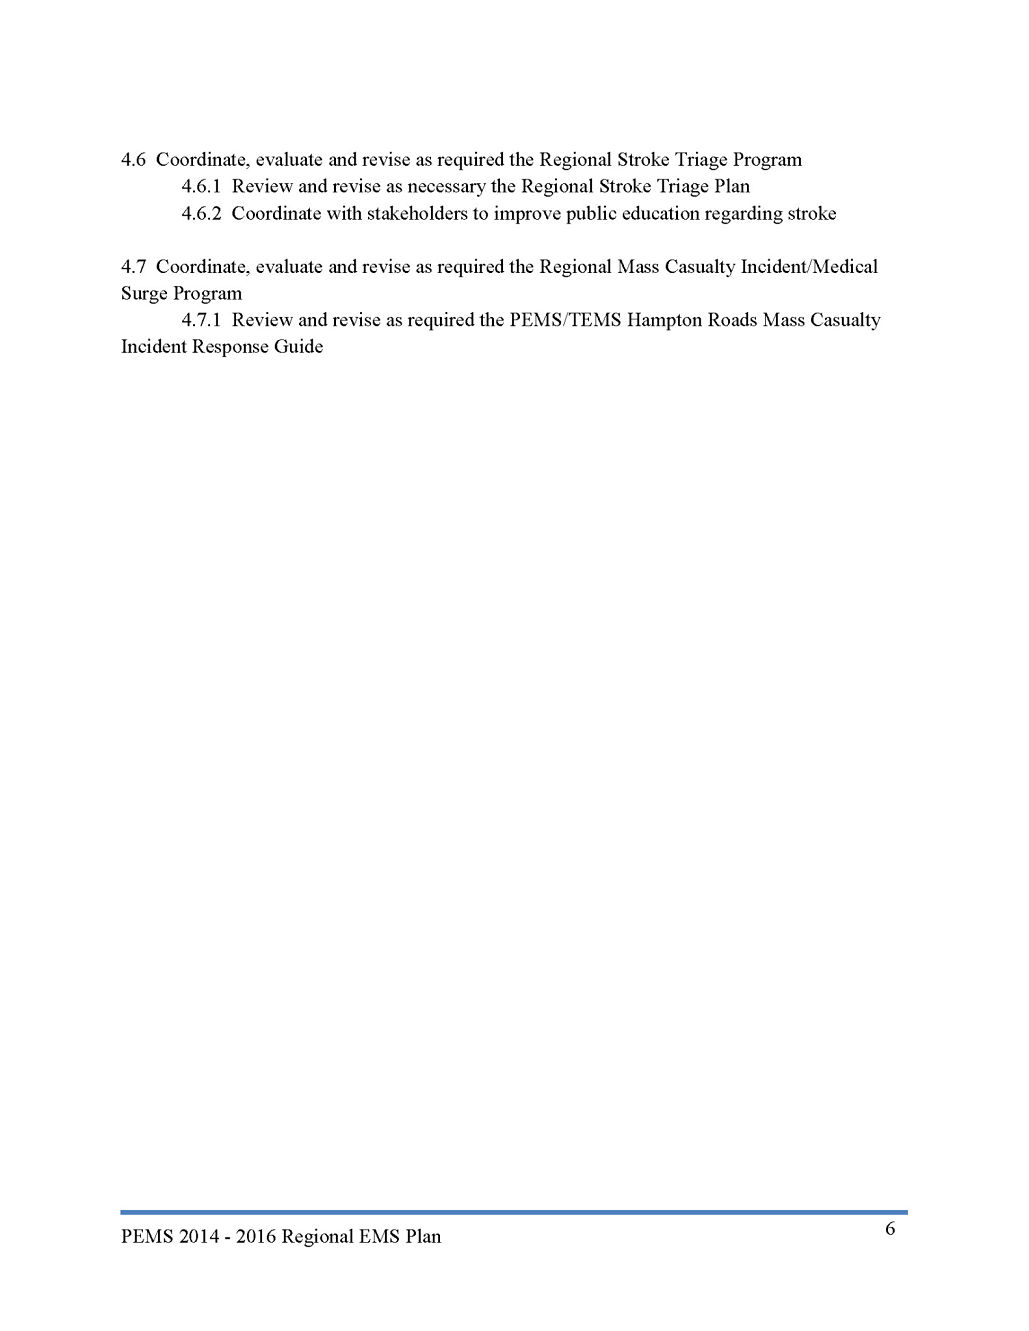 2014 Regional EMS Plan 2015 Review Page 6